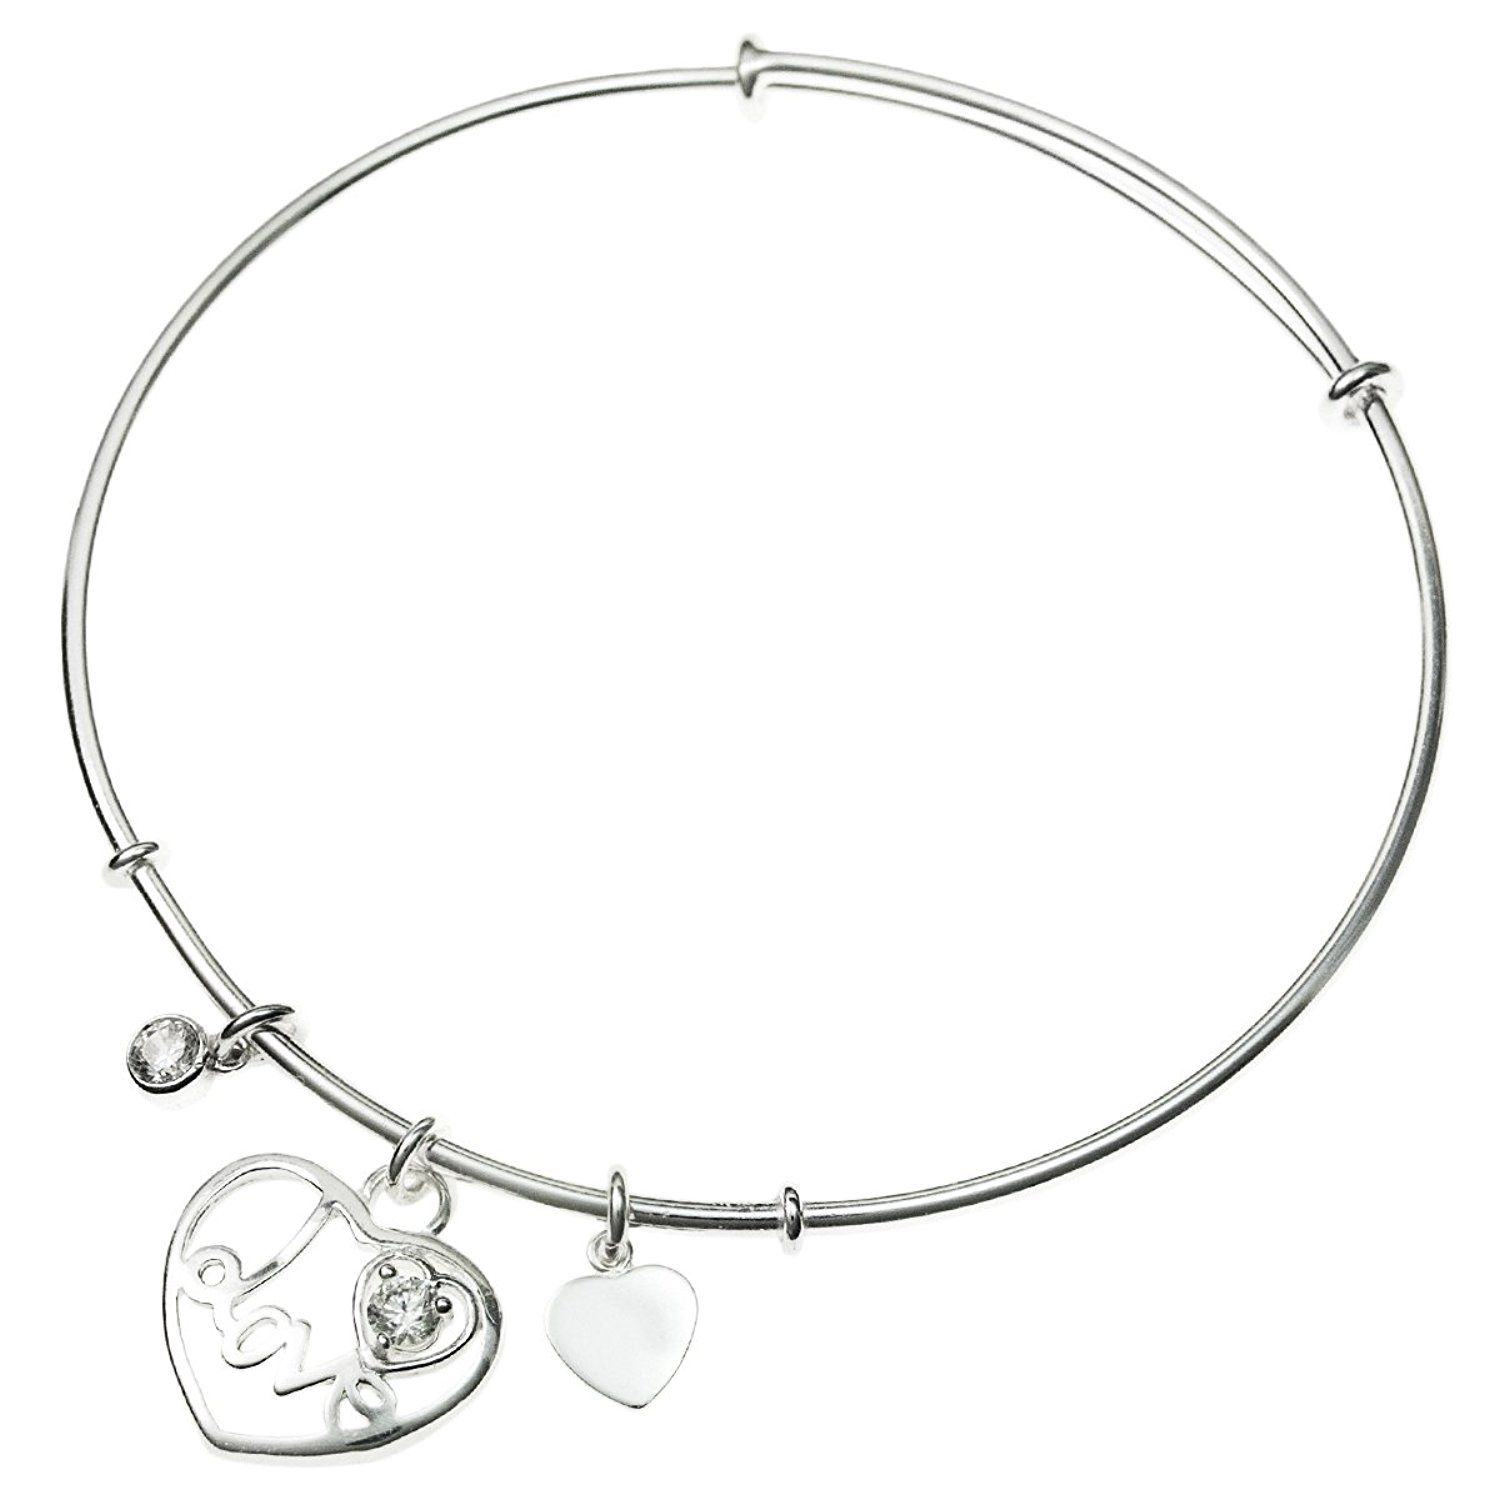 Sterling Silver Cubic Zirconia Love Heart Dangle Charm Bangle Bracelet, Adjustable 7